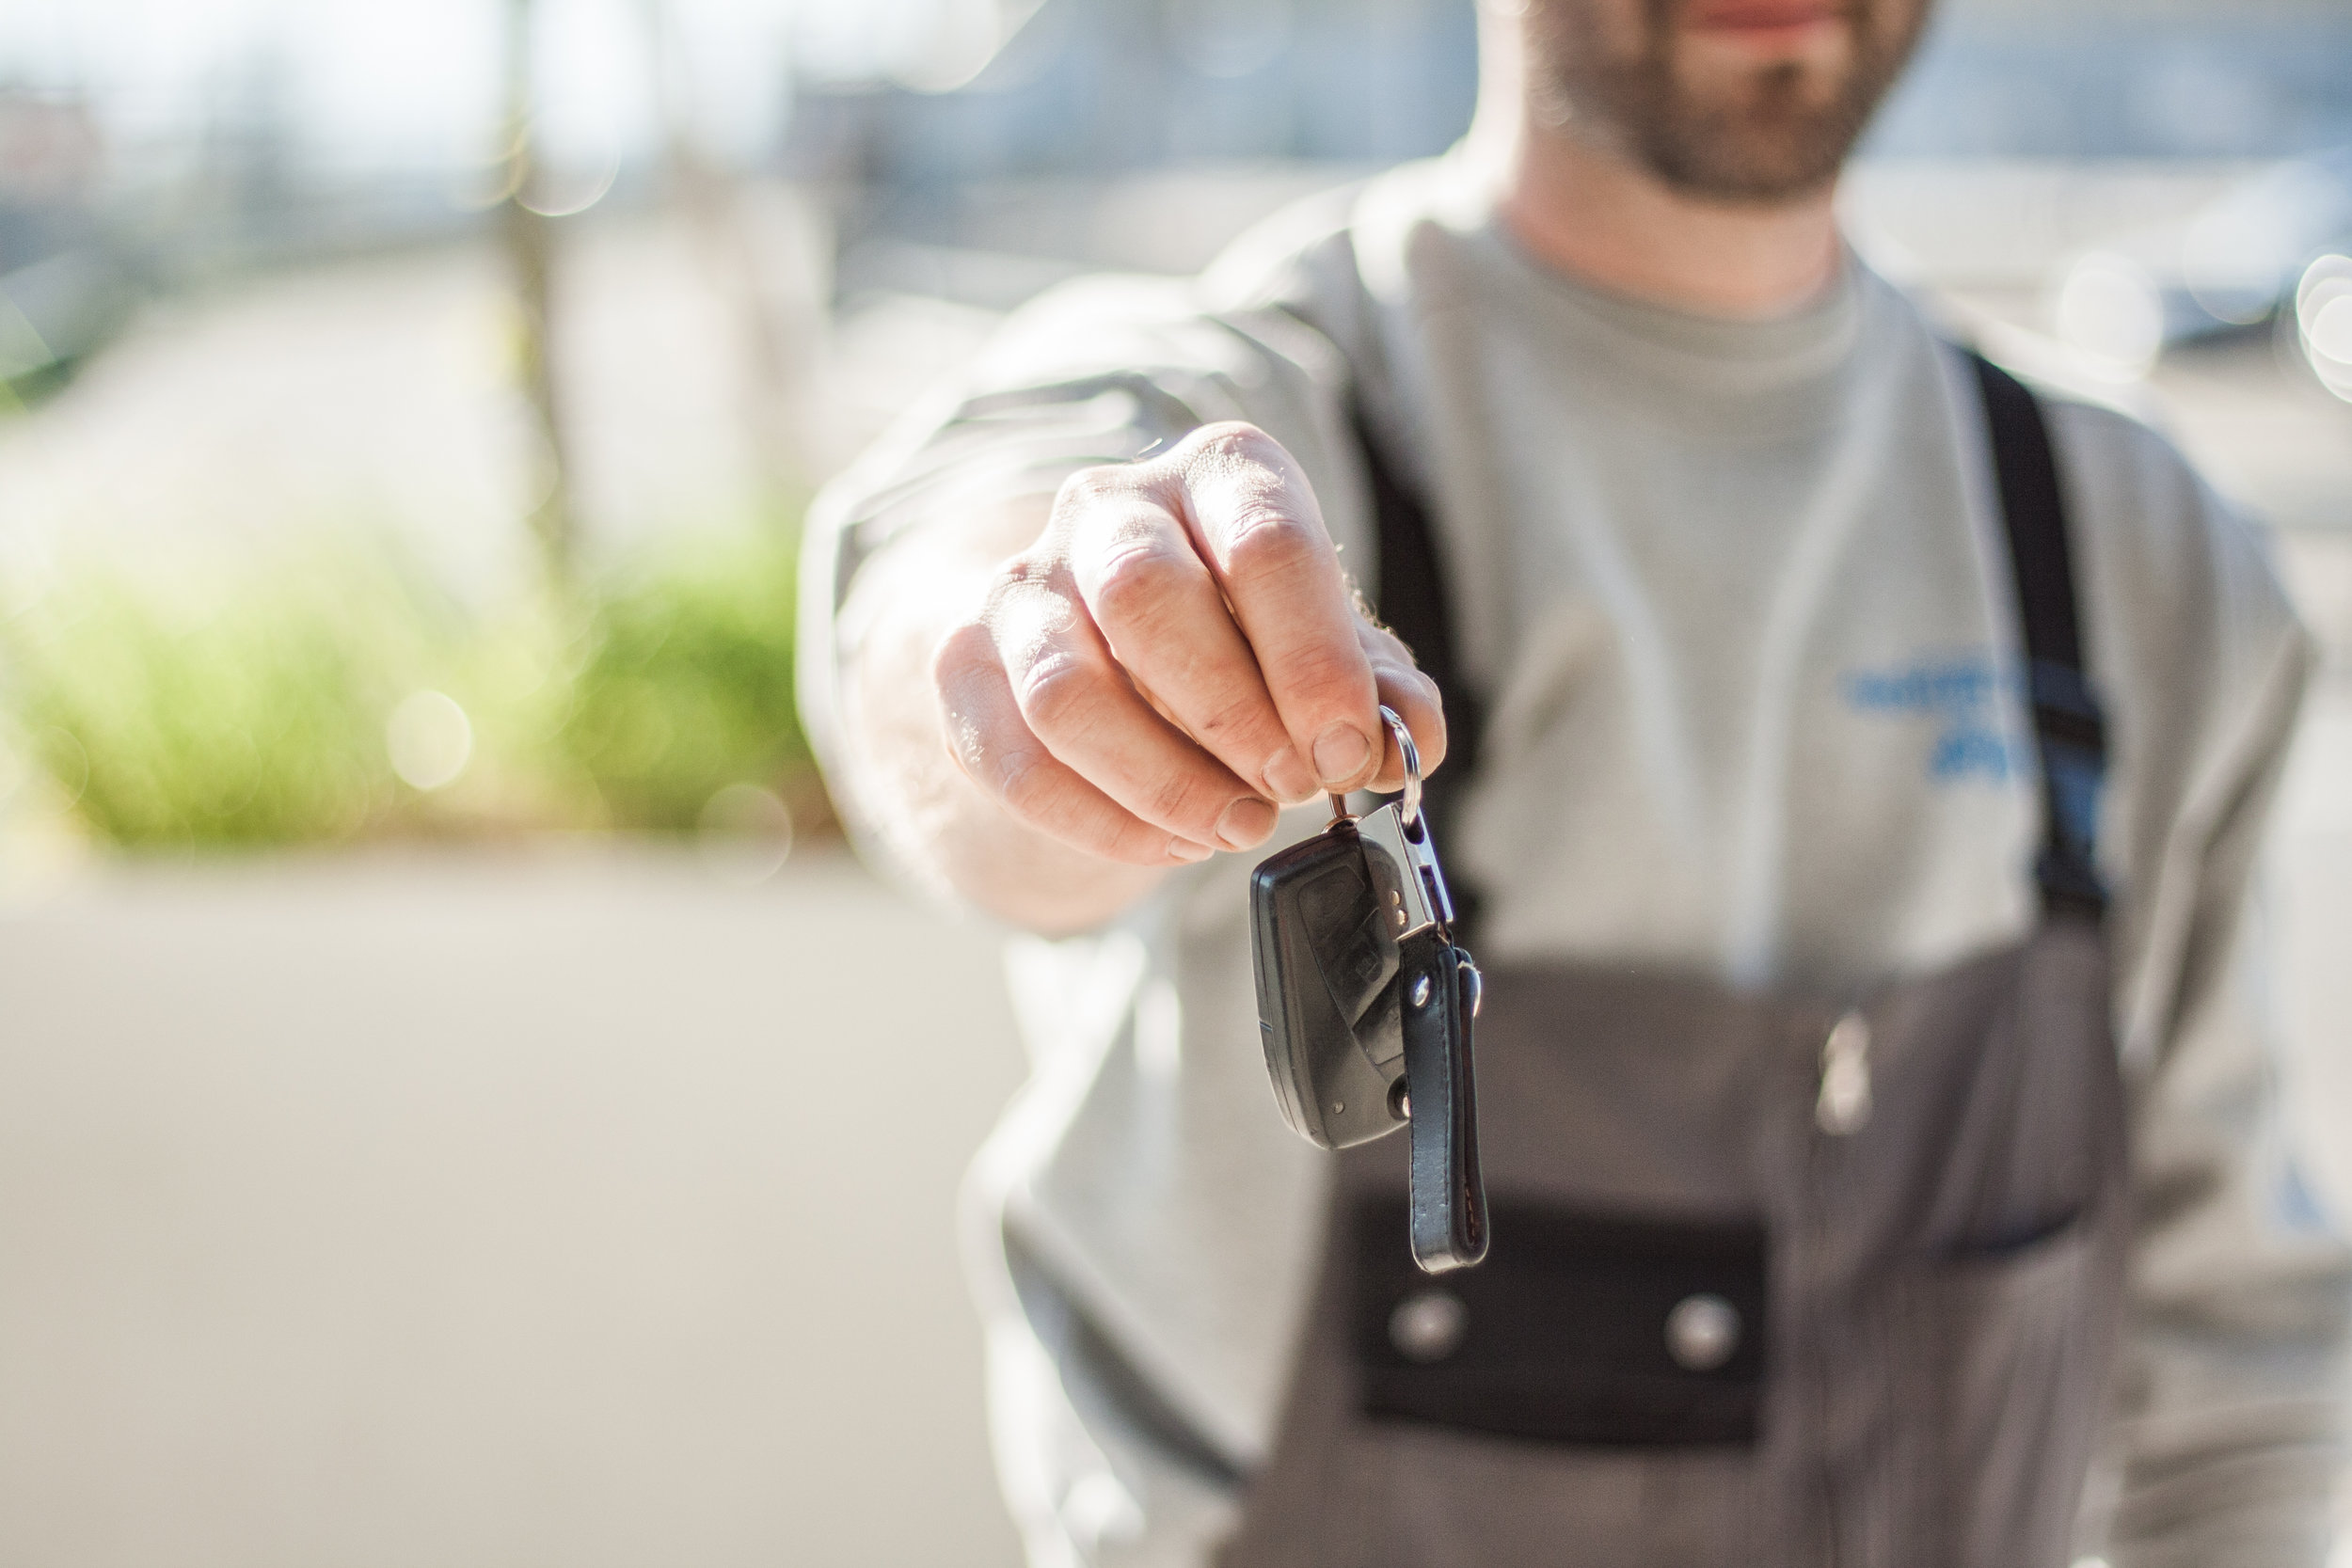 reDUNNit is disrupting the auto-reconditioning industry with a new convenience model